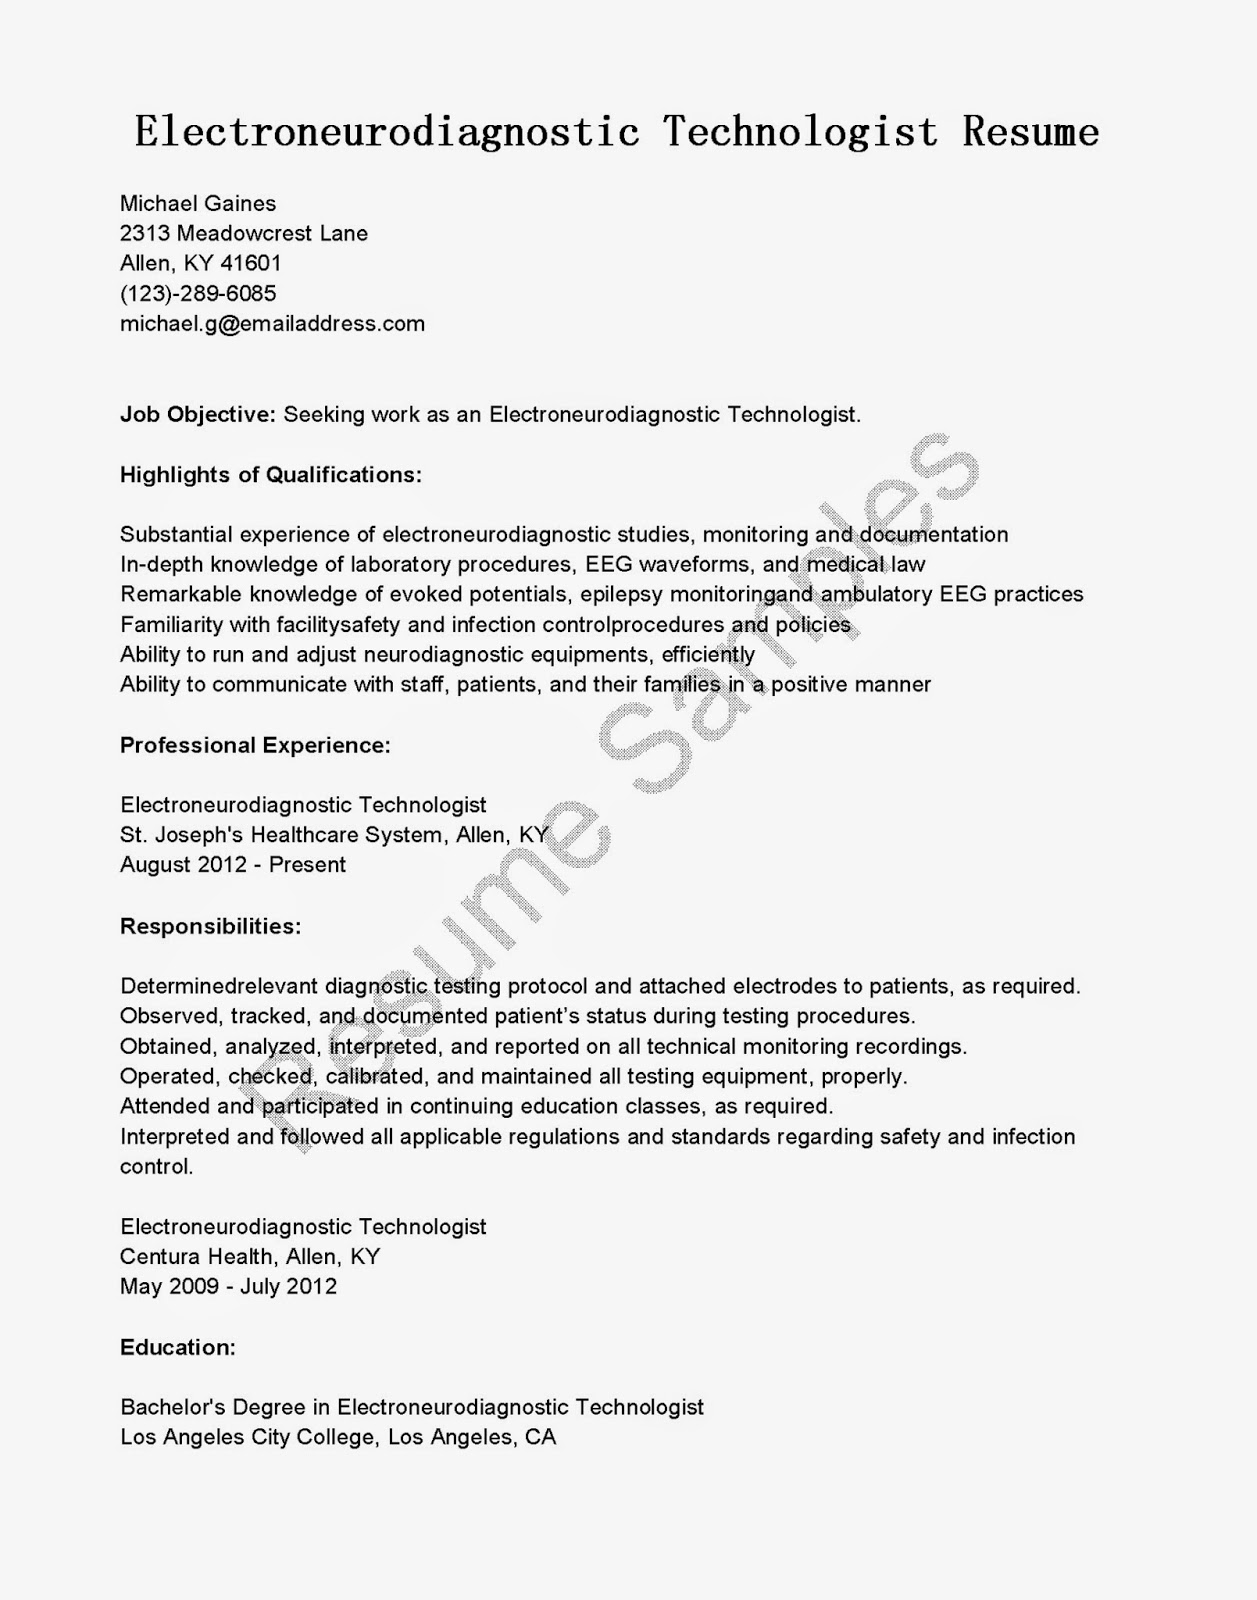 resume samples  electroneurodiagnostic technologist resume